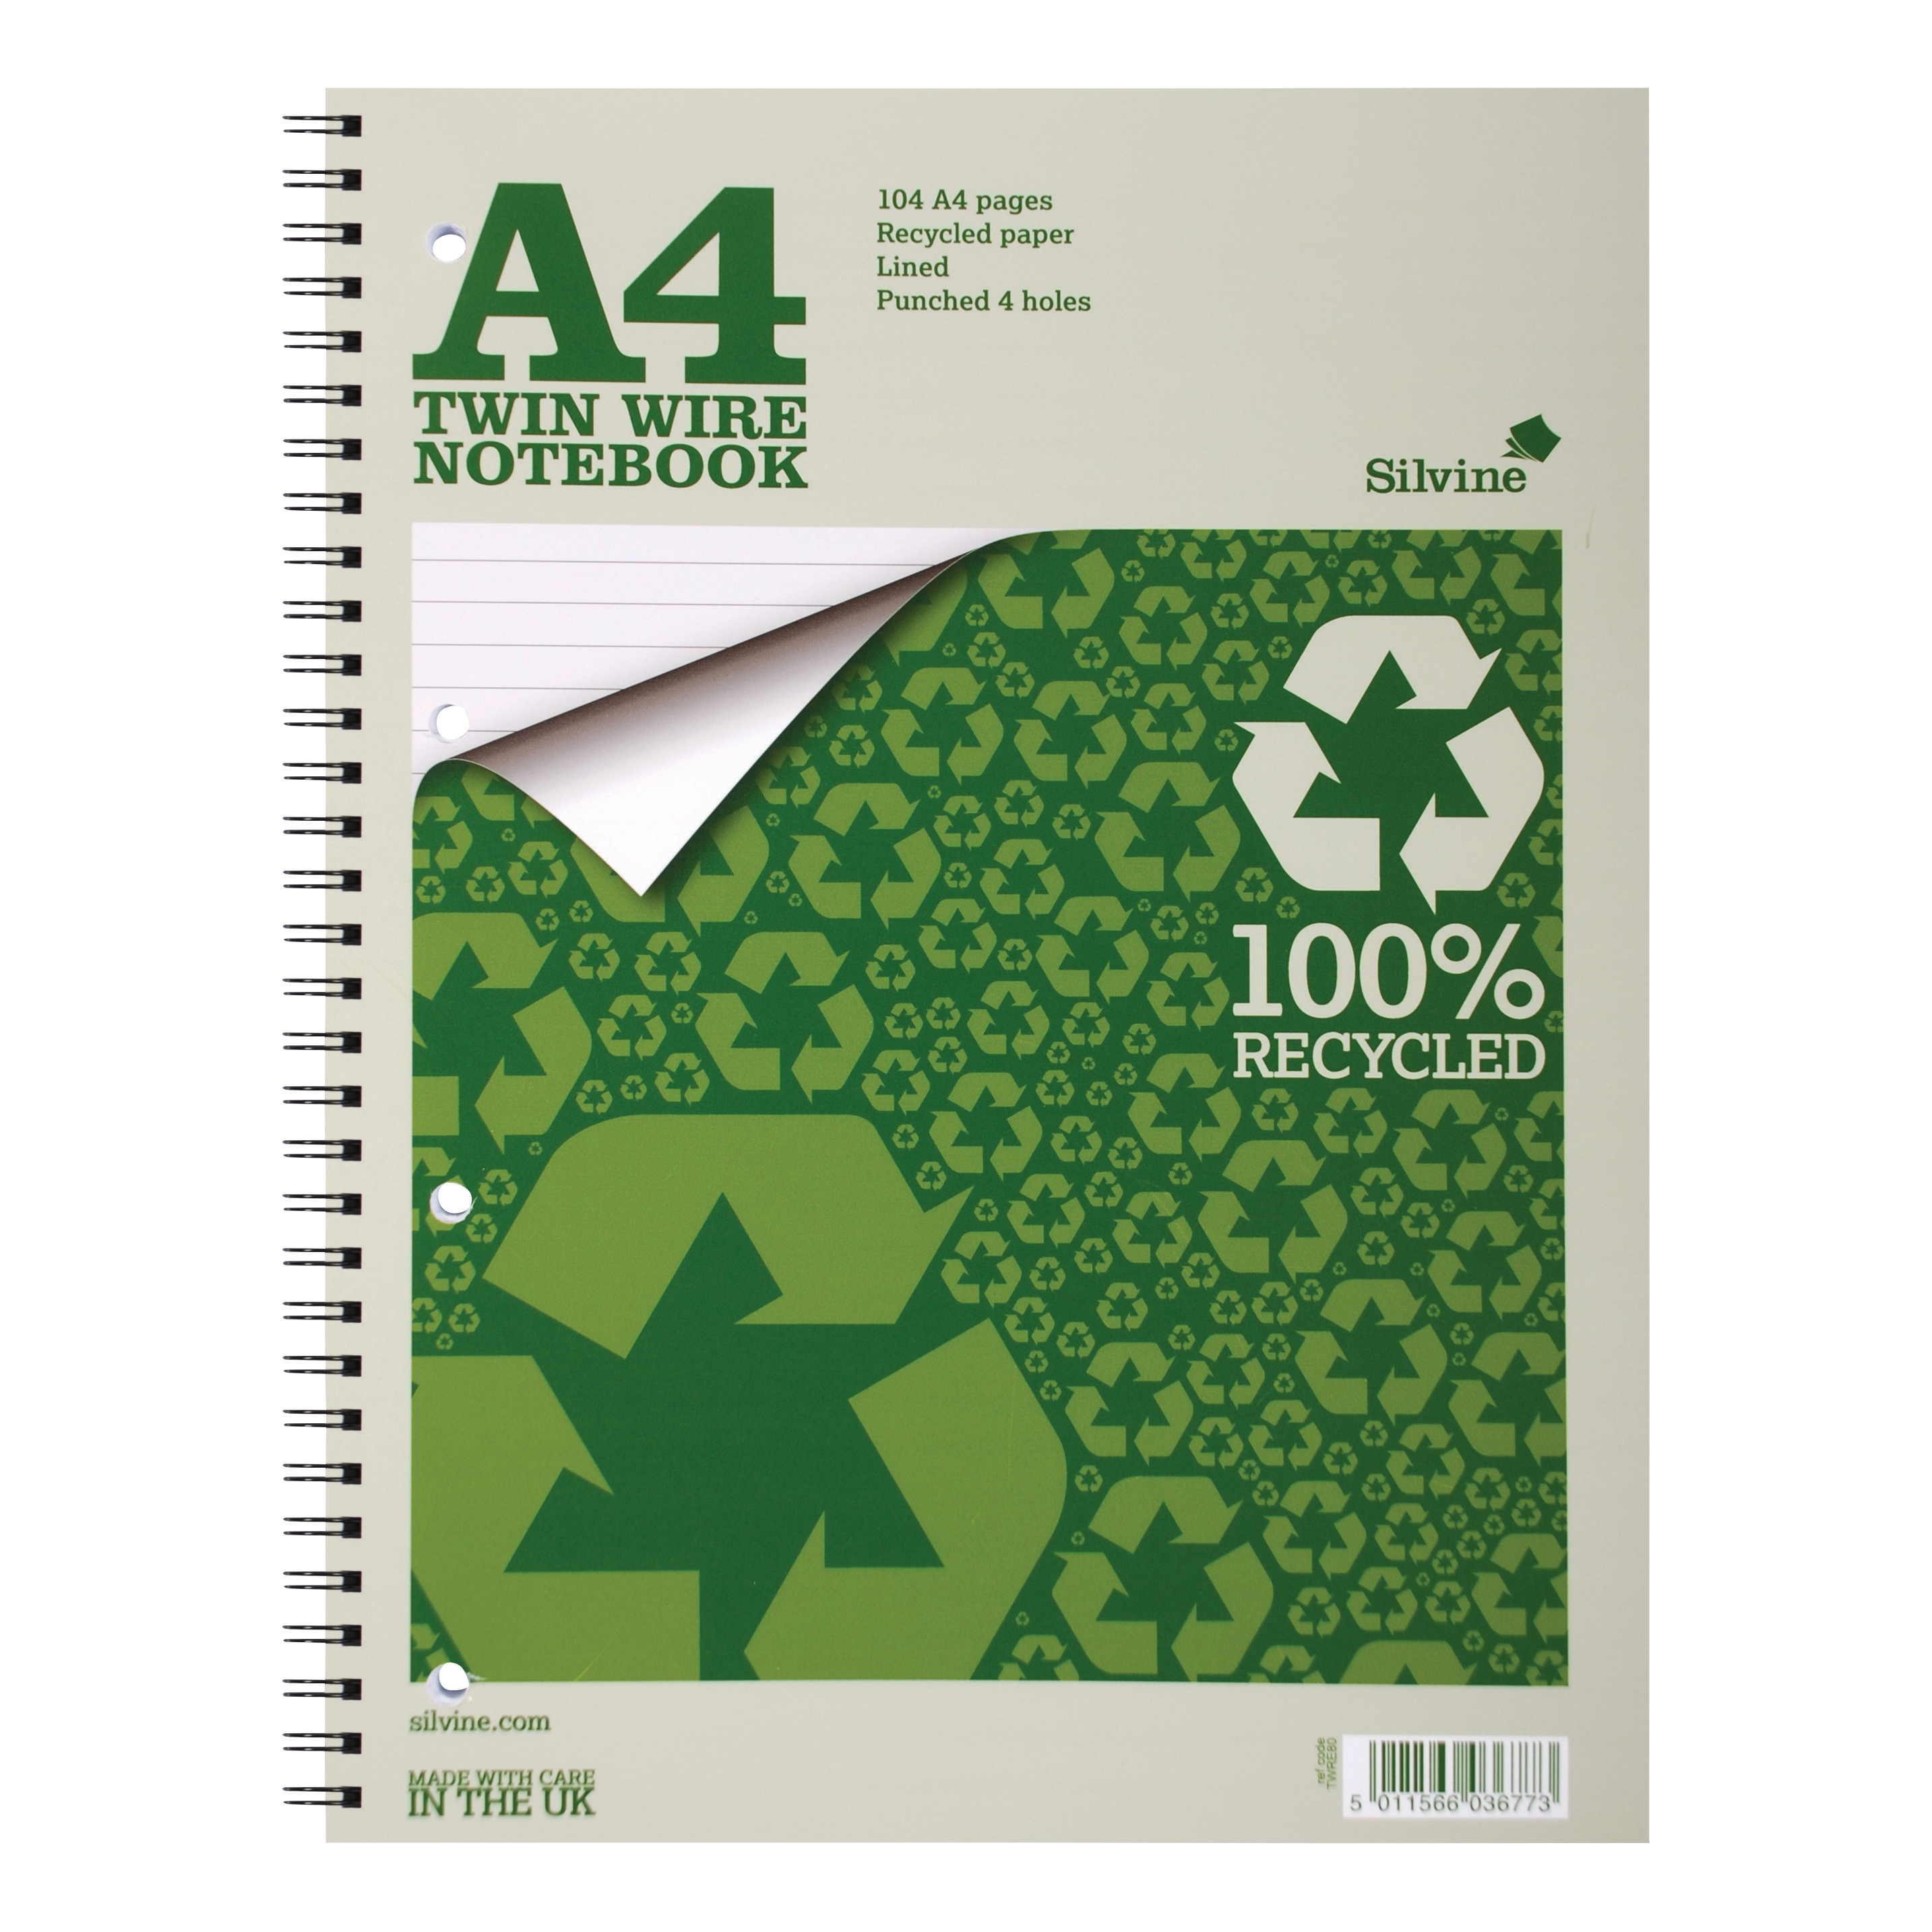 Silvine Recycled Notebook Wirebnd 70gsm Ruled Margin Perf Punched 4 Holes 104pp A4 Ref TWRE80 Pack 12